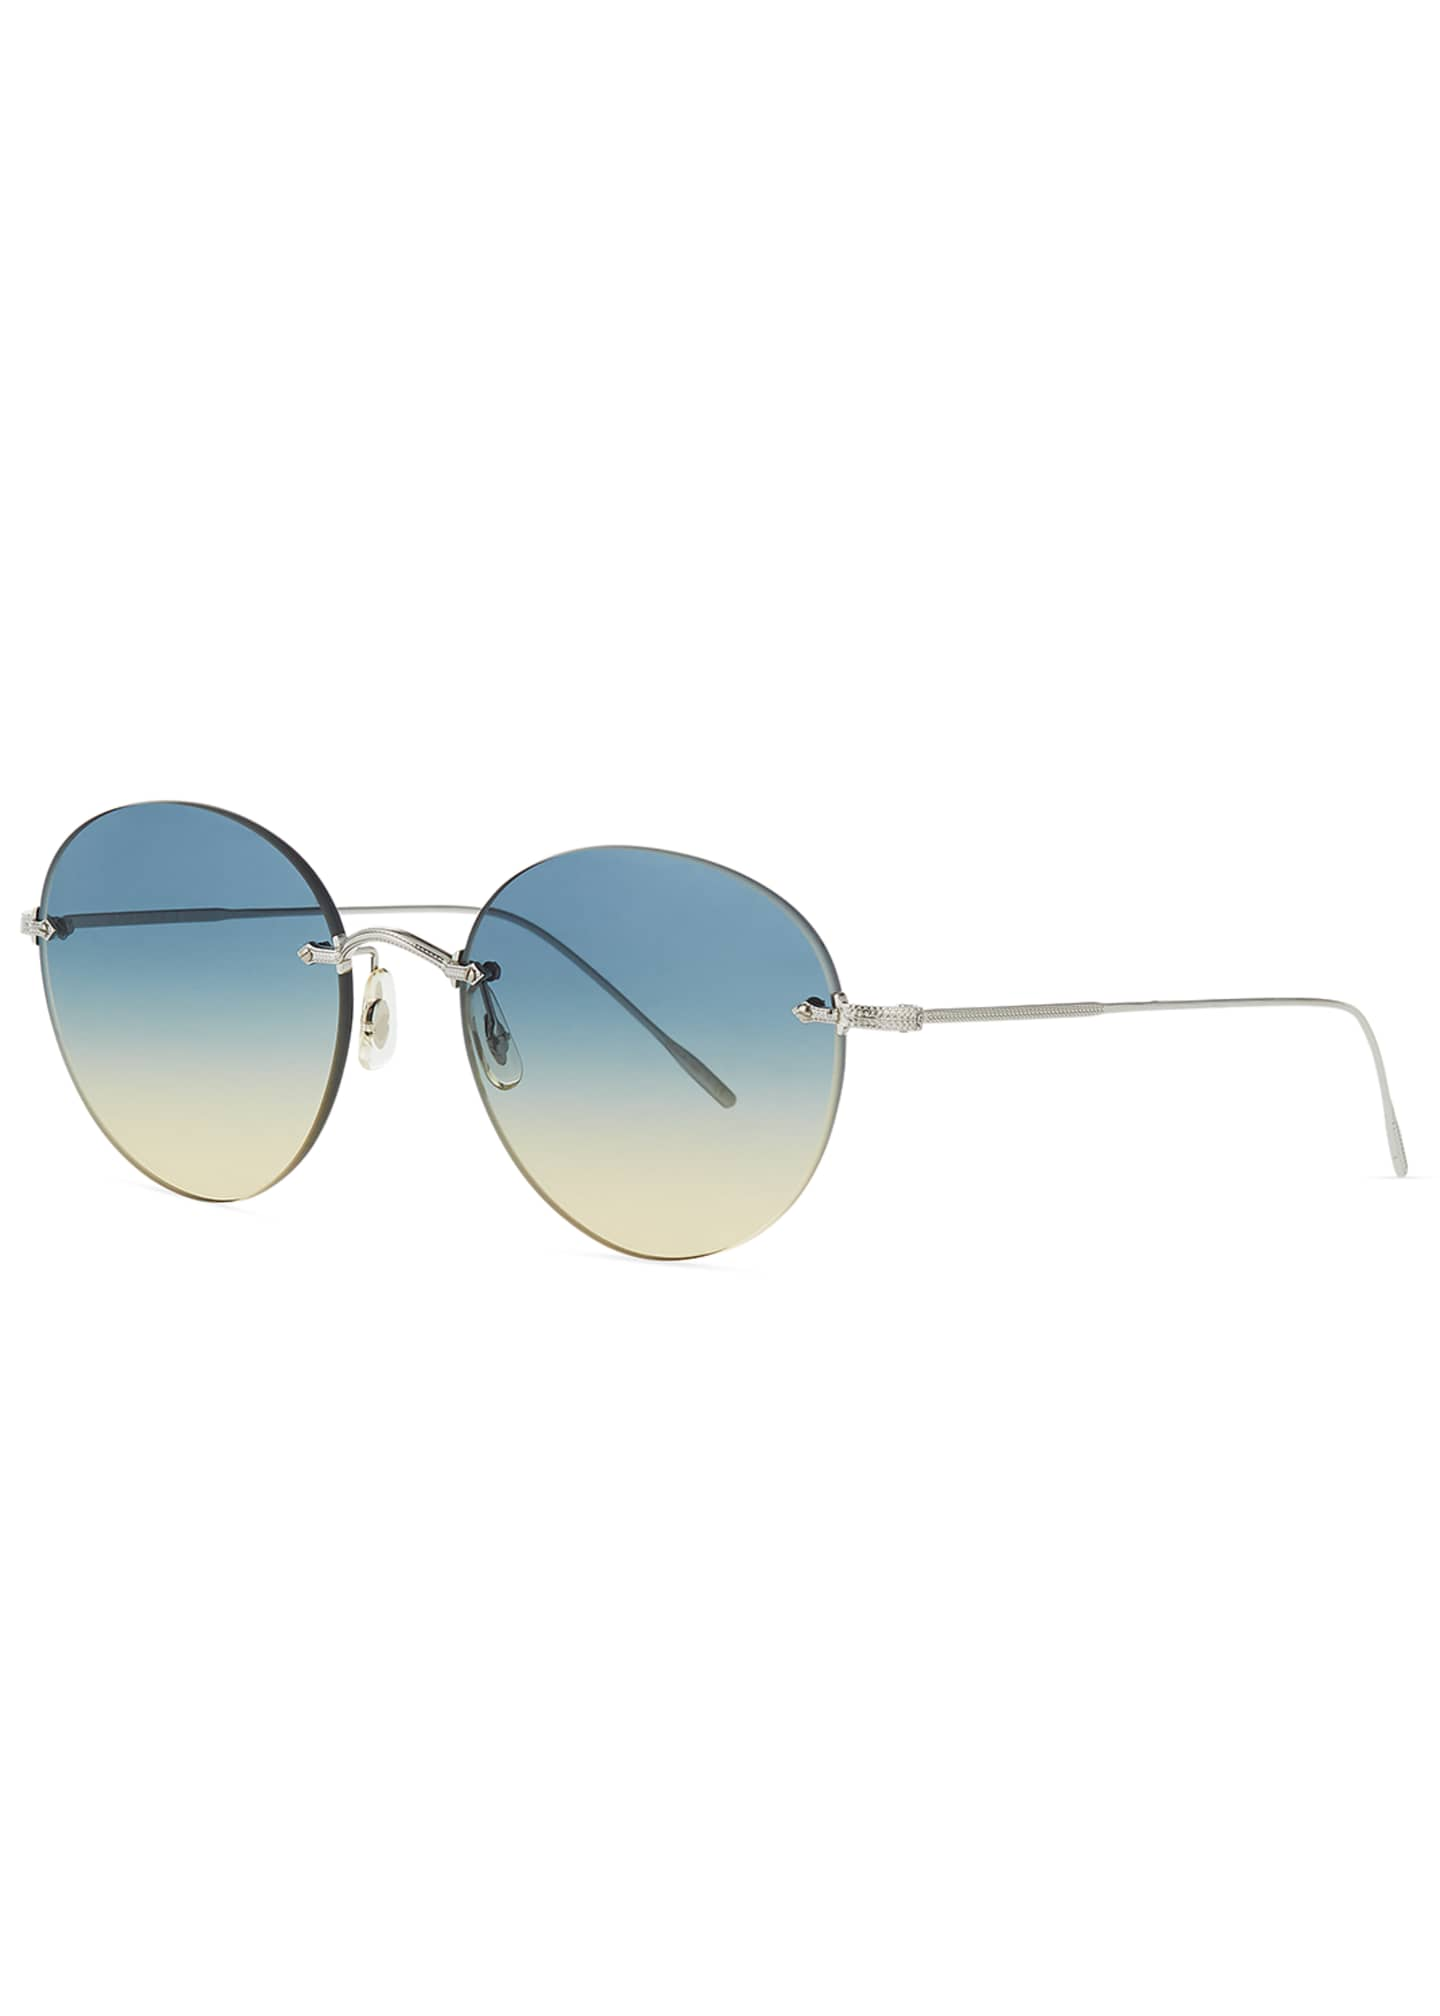 Oliver Peoples Oval Rimless Metal Engraved Sunglasses